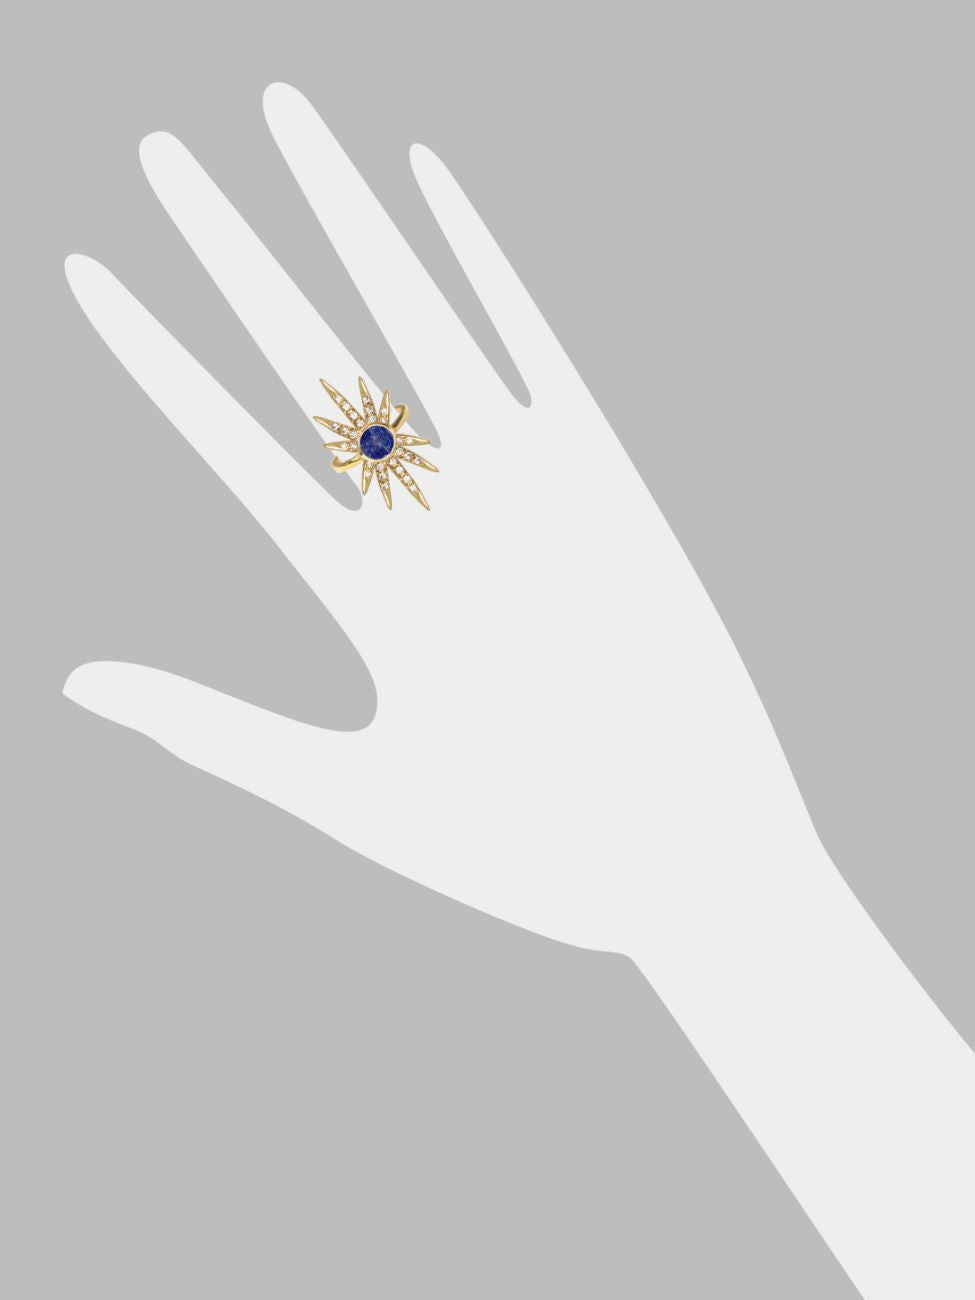 Sunburst Ring<br /><i><small>18K Gold Plated with Lapis Lazuli & White Topaz</small></i><br /> - Eddera